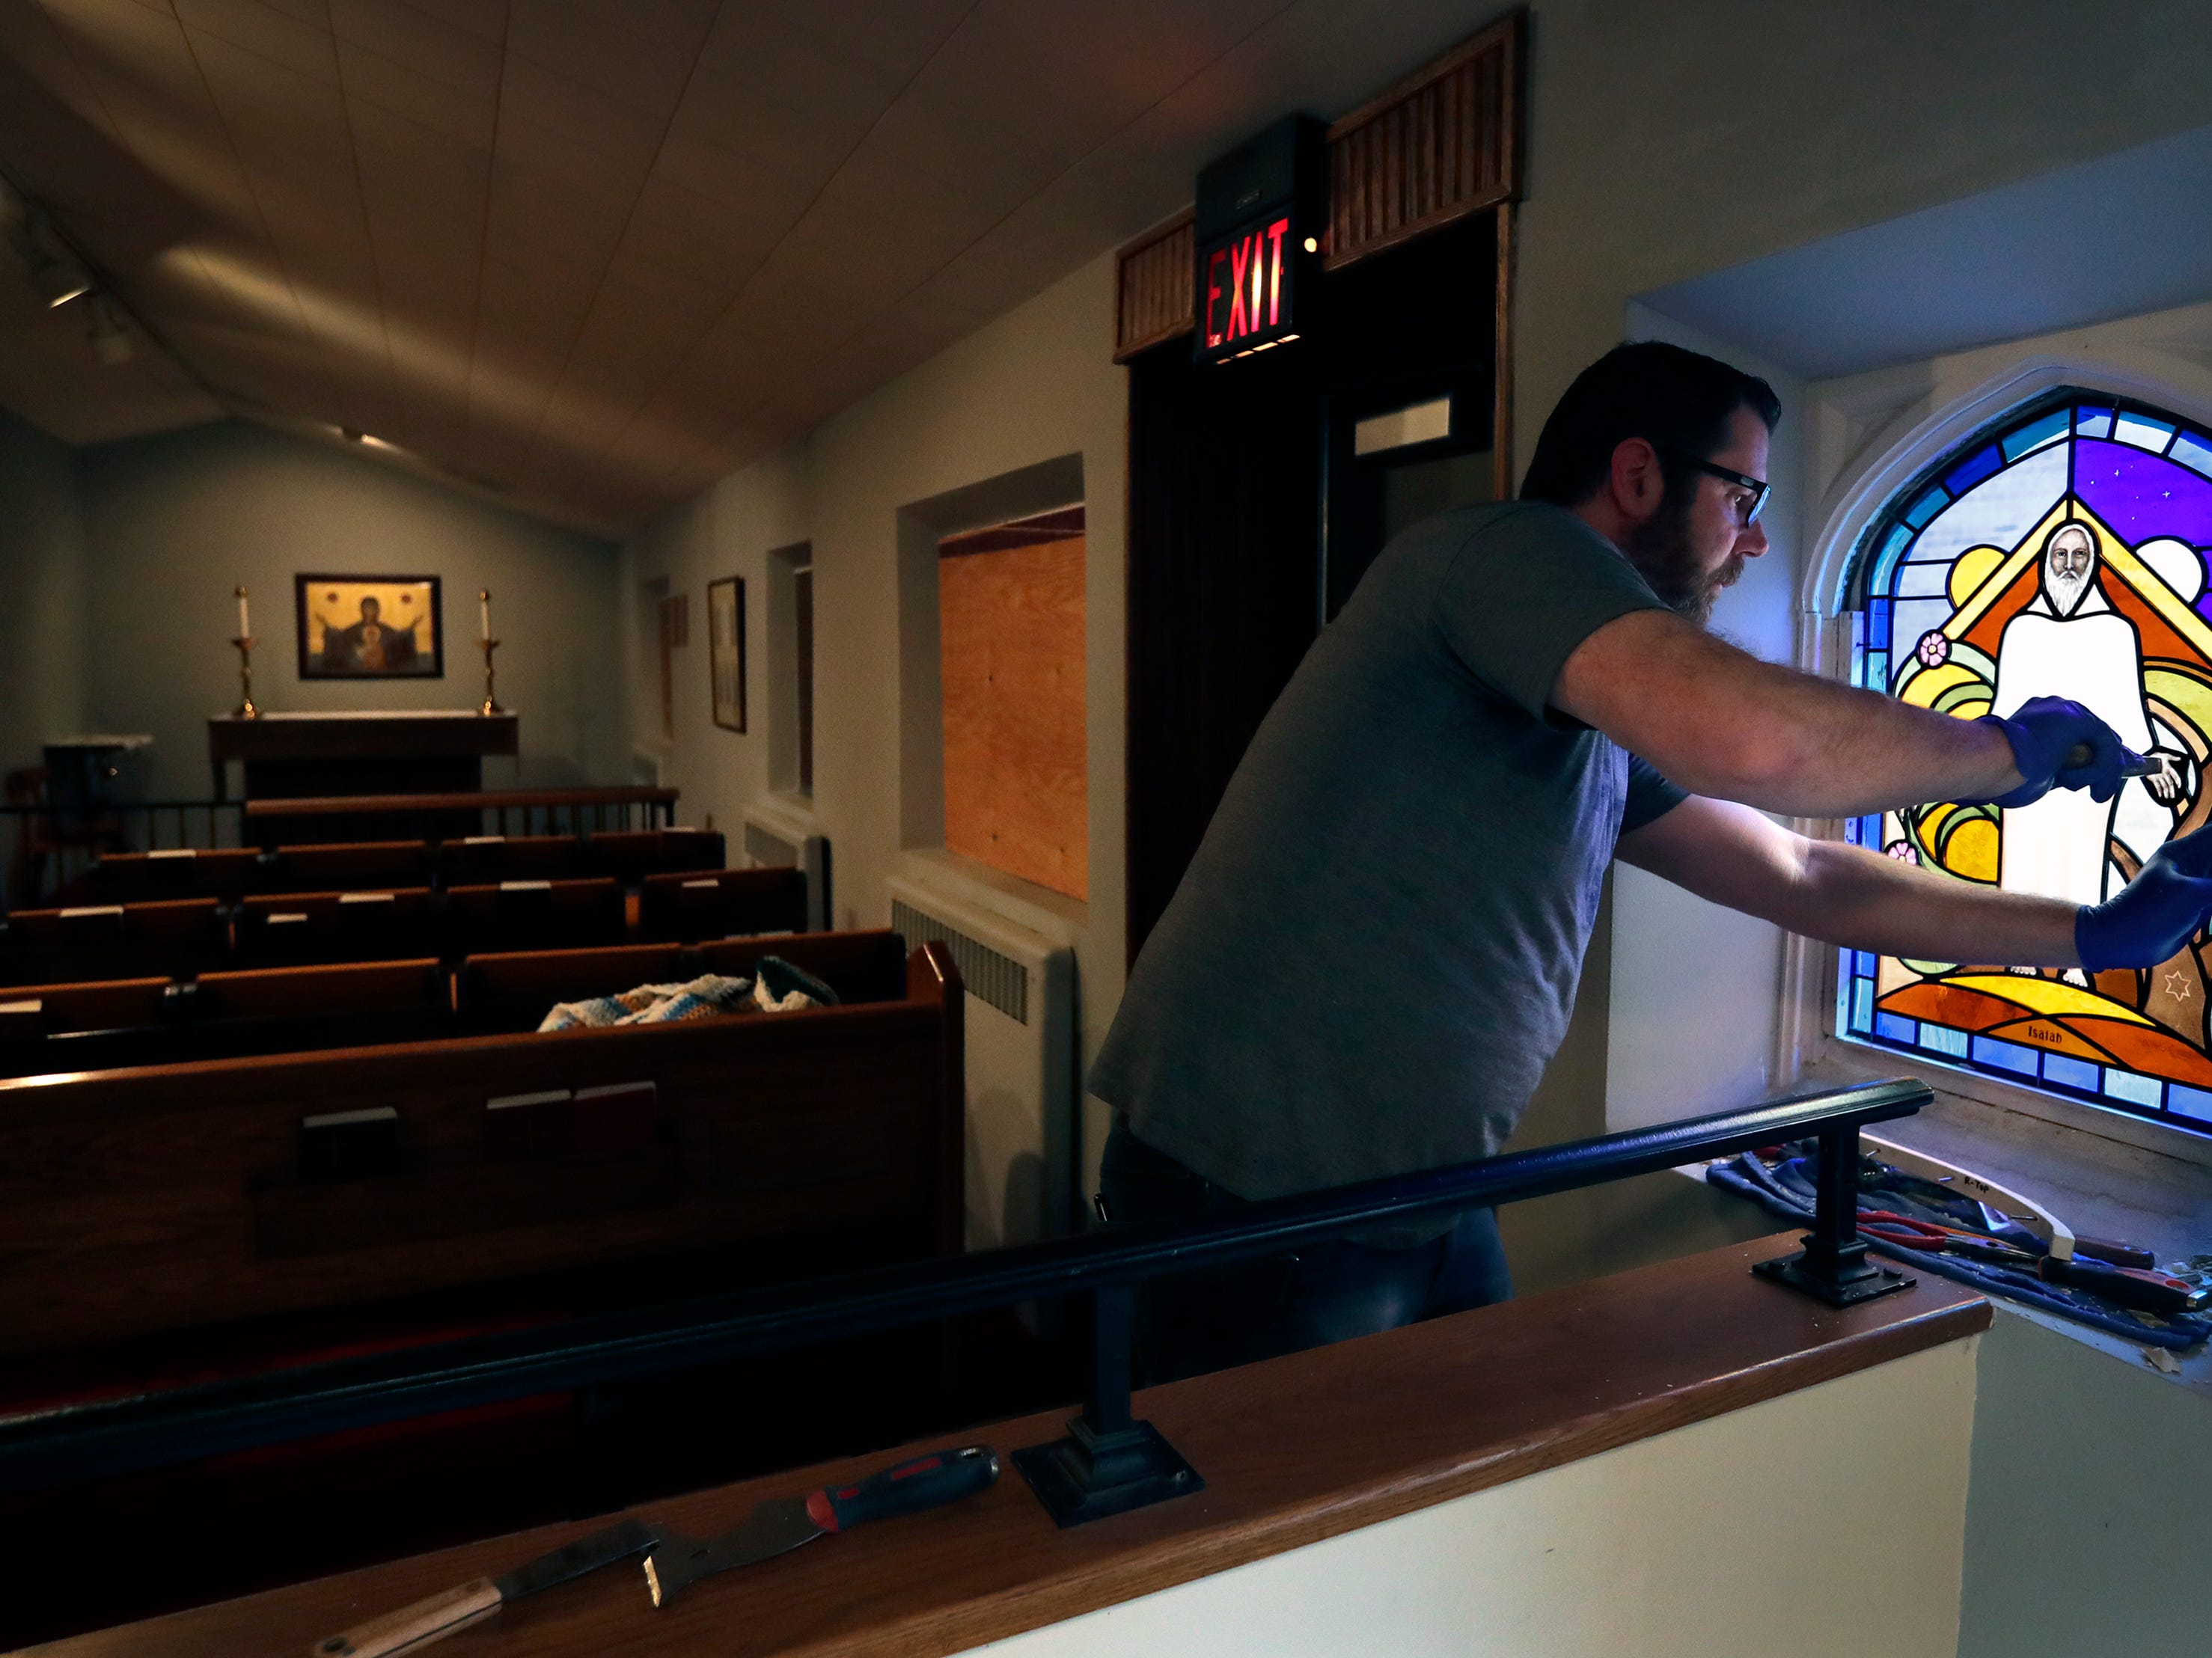 Russell Farlow, a glazier with Coventry Glassworks & Gallery, replaces a repaired stained glass window Thursday, April 18, 2019, at All Saints Episcopal Church in Appleton, Wis. The window is one of nine that were vandalized in March.Dan Powers/USA TODAY NETWORK-Wisconsin